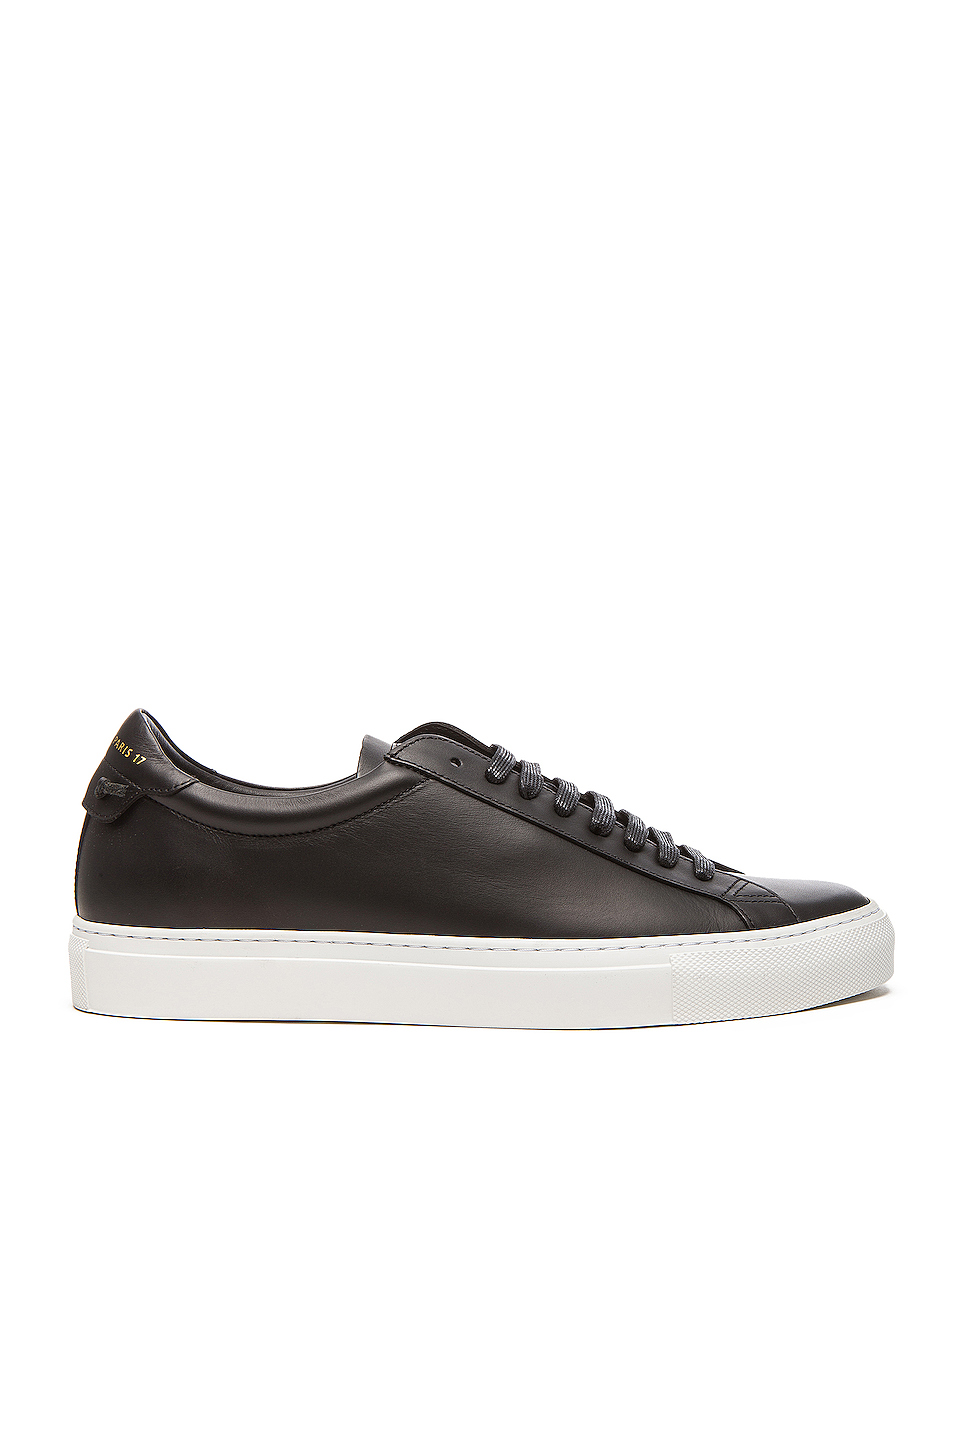 GIVENCHY Knots Low Top Leather Sneakers in Black